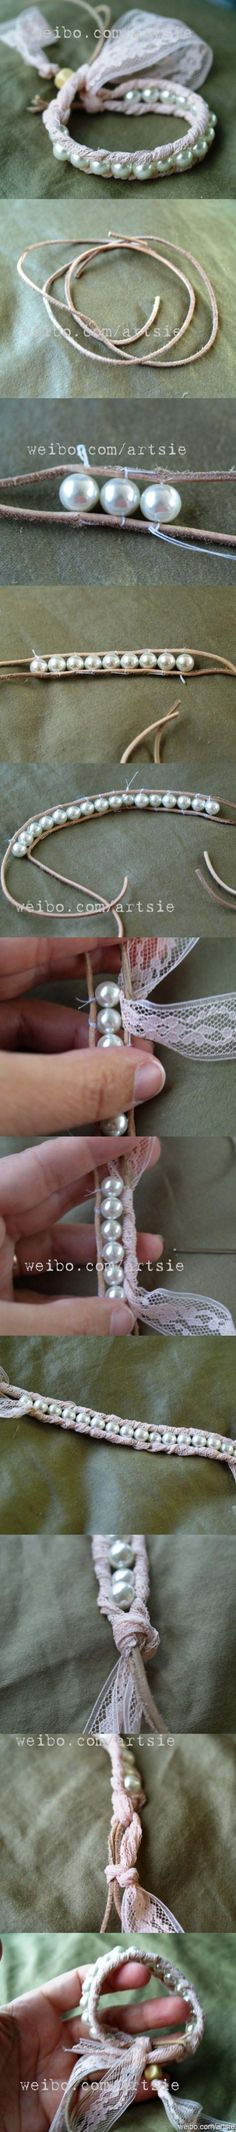 Lace Bead Bracelet Tutorial